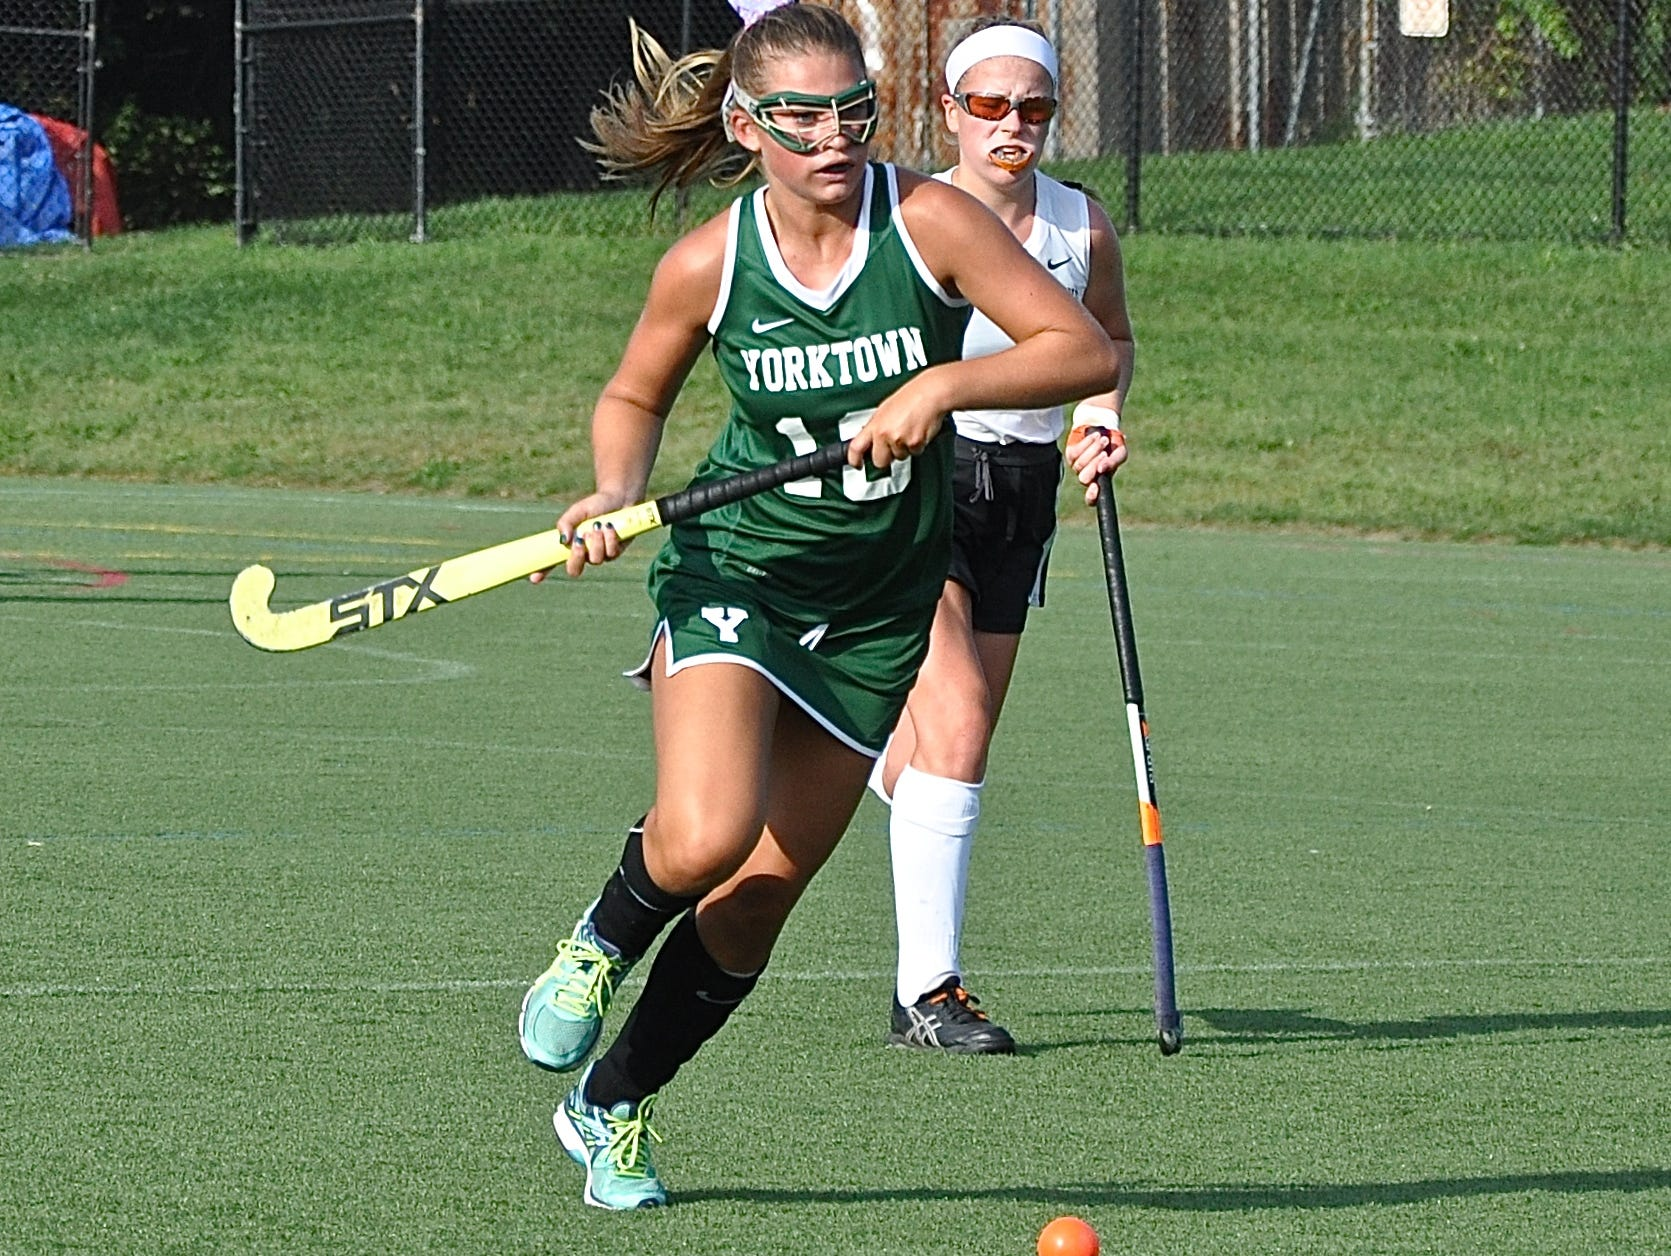 Yorktown's Katie Vogel carries the ball up the field against Pawling.